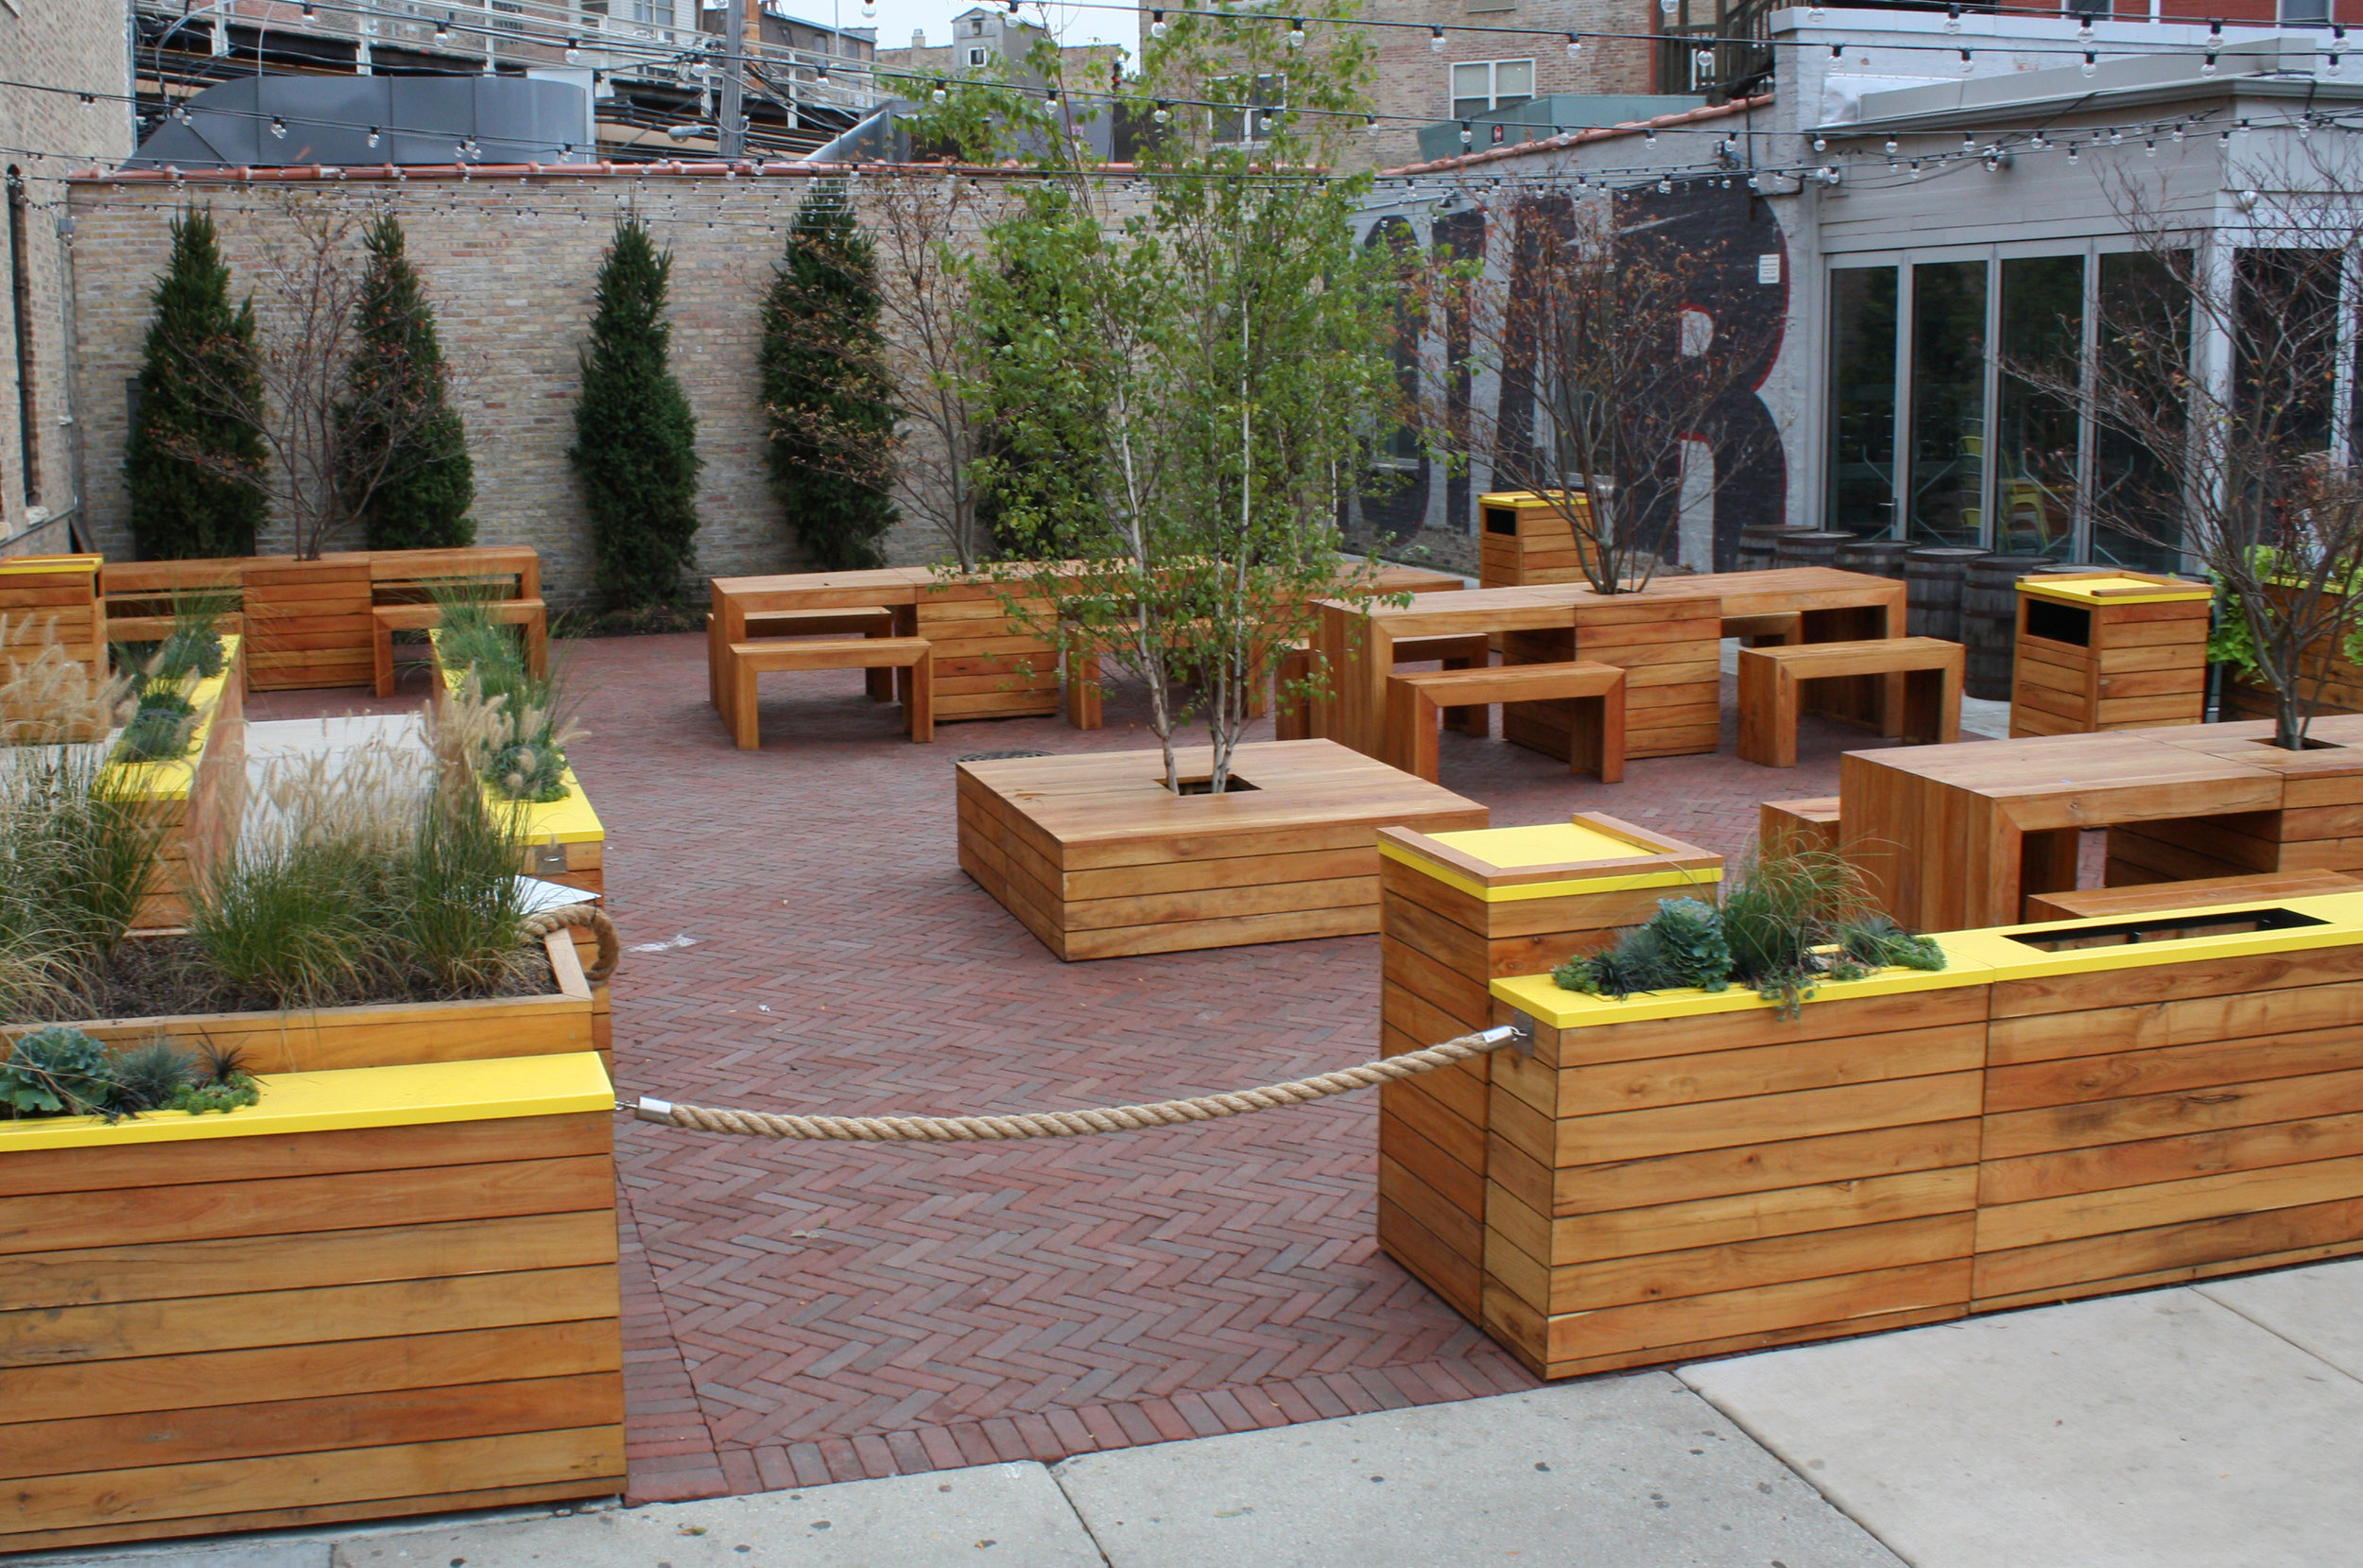 BIG STAR RESTAURANT - Chicago's favorite taco/whiskey spot added this outdoor seating area for take out. Made from black locust these site furnishings will provide years of service.